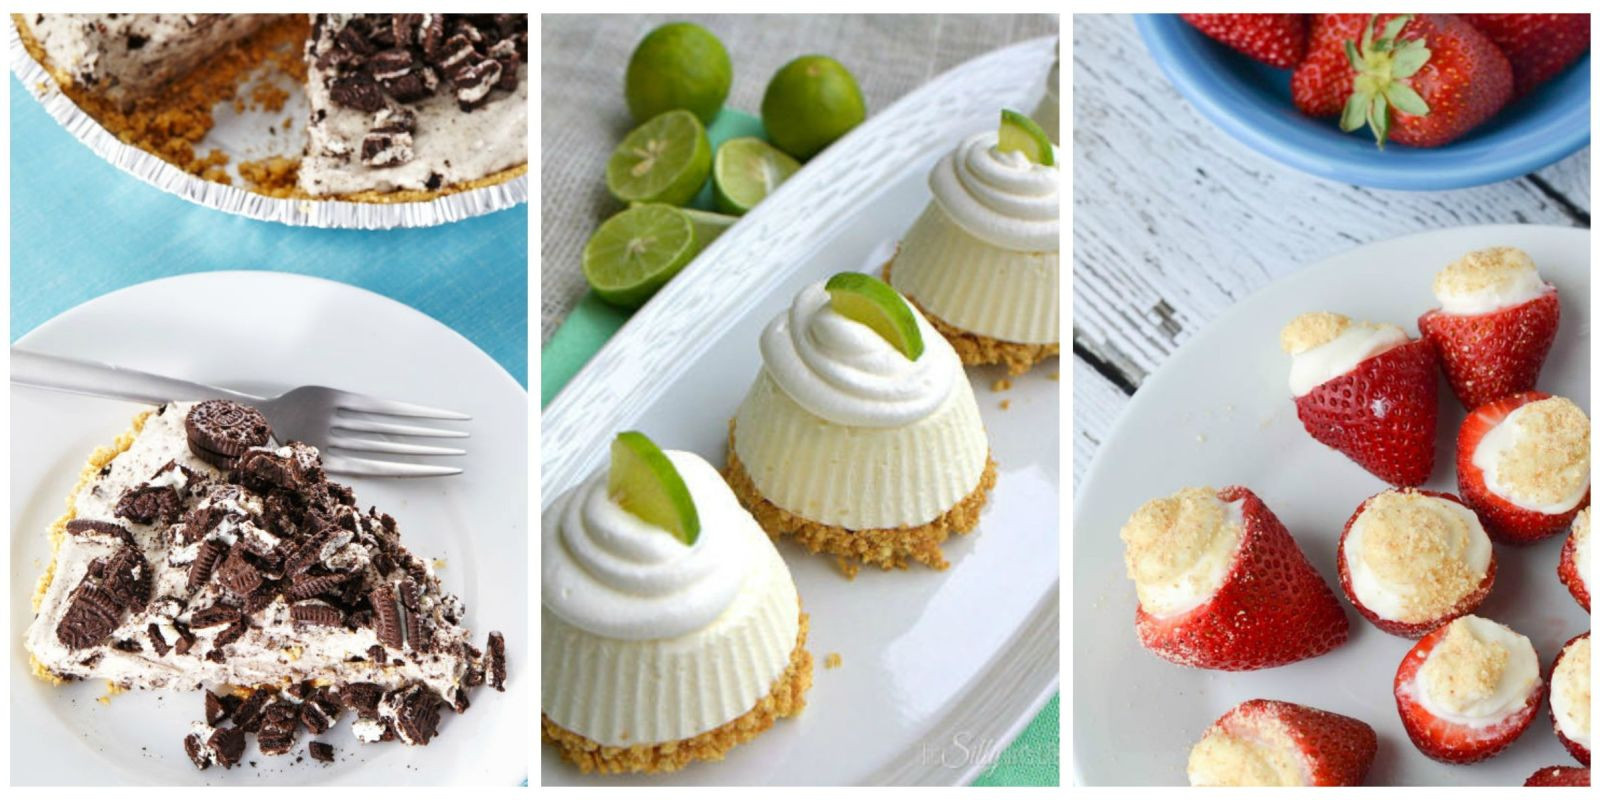 Summer Desserts Ideas  57 Easy Summer Desserts Best Recipes for Frozen Summer